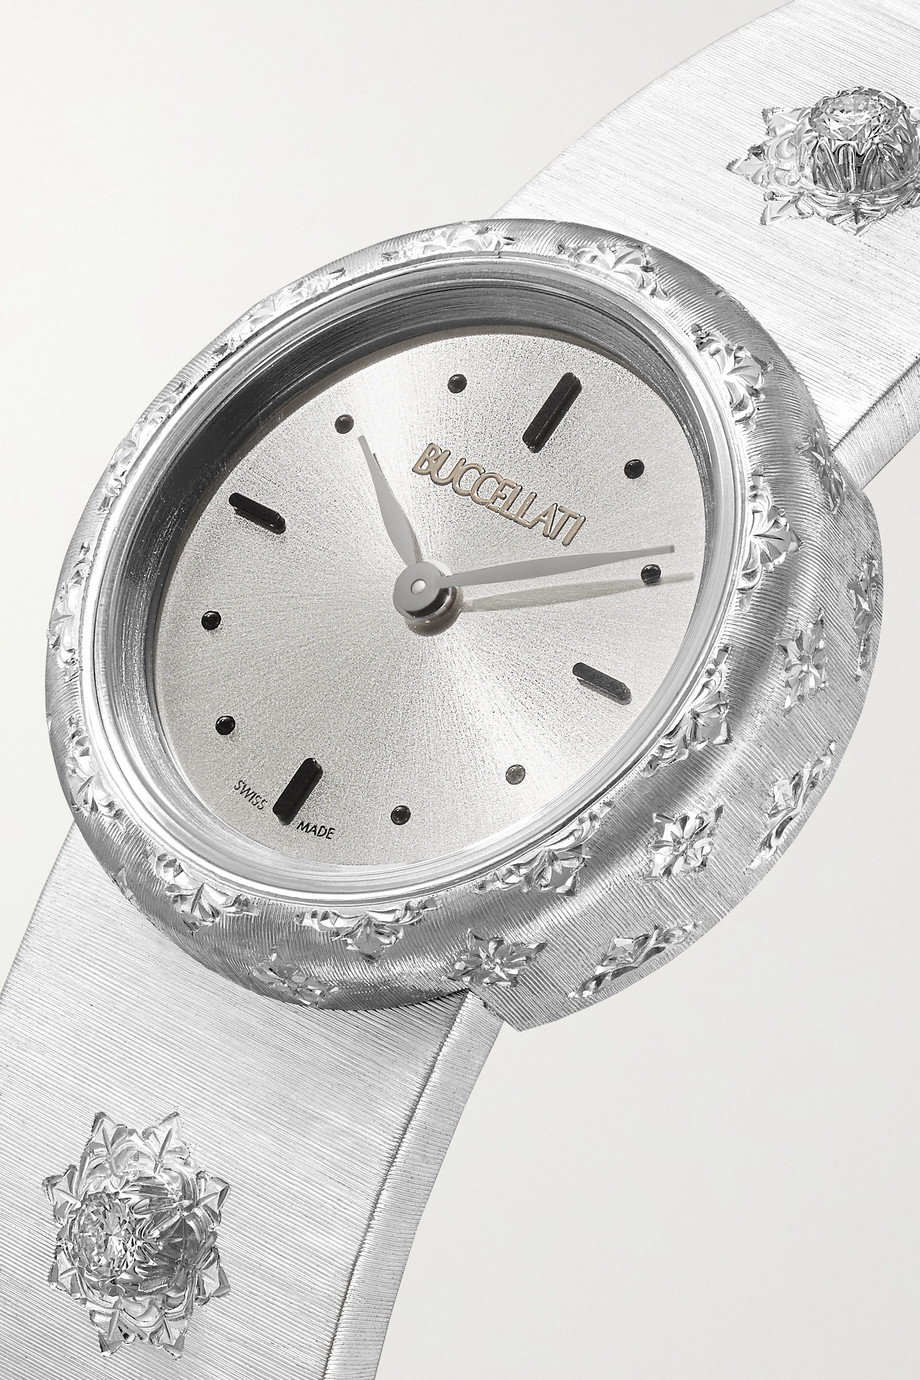 Buccellati Macri 24mm 18-karat white gold and diamond watch